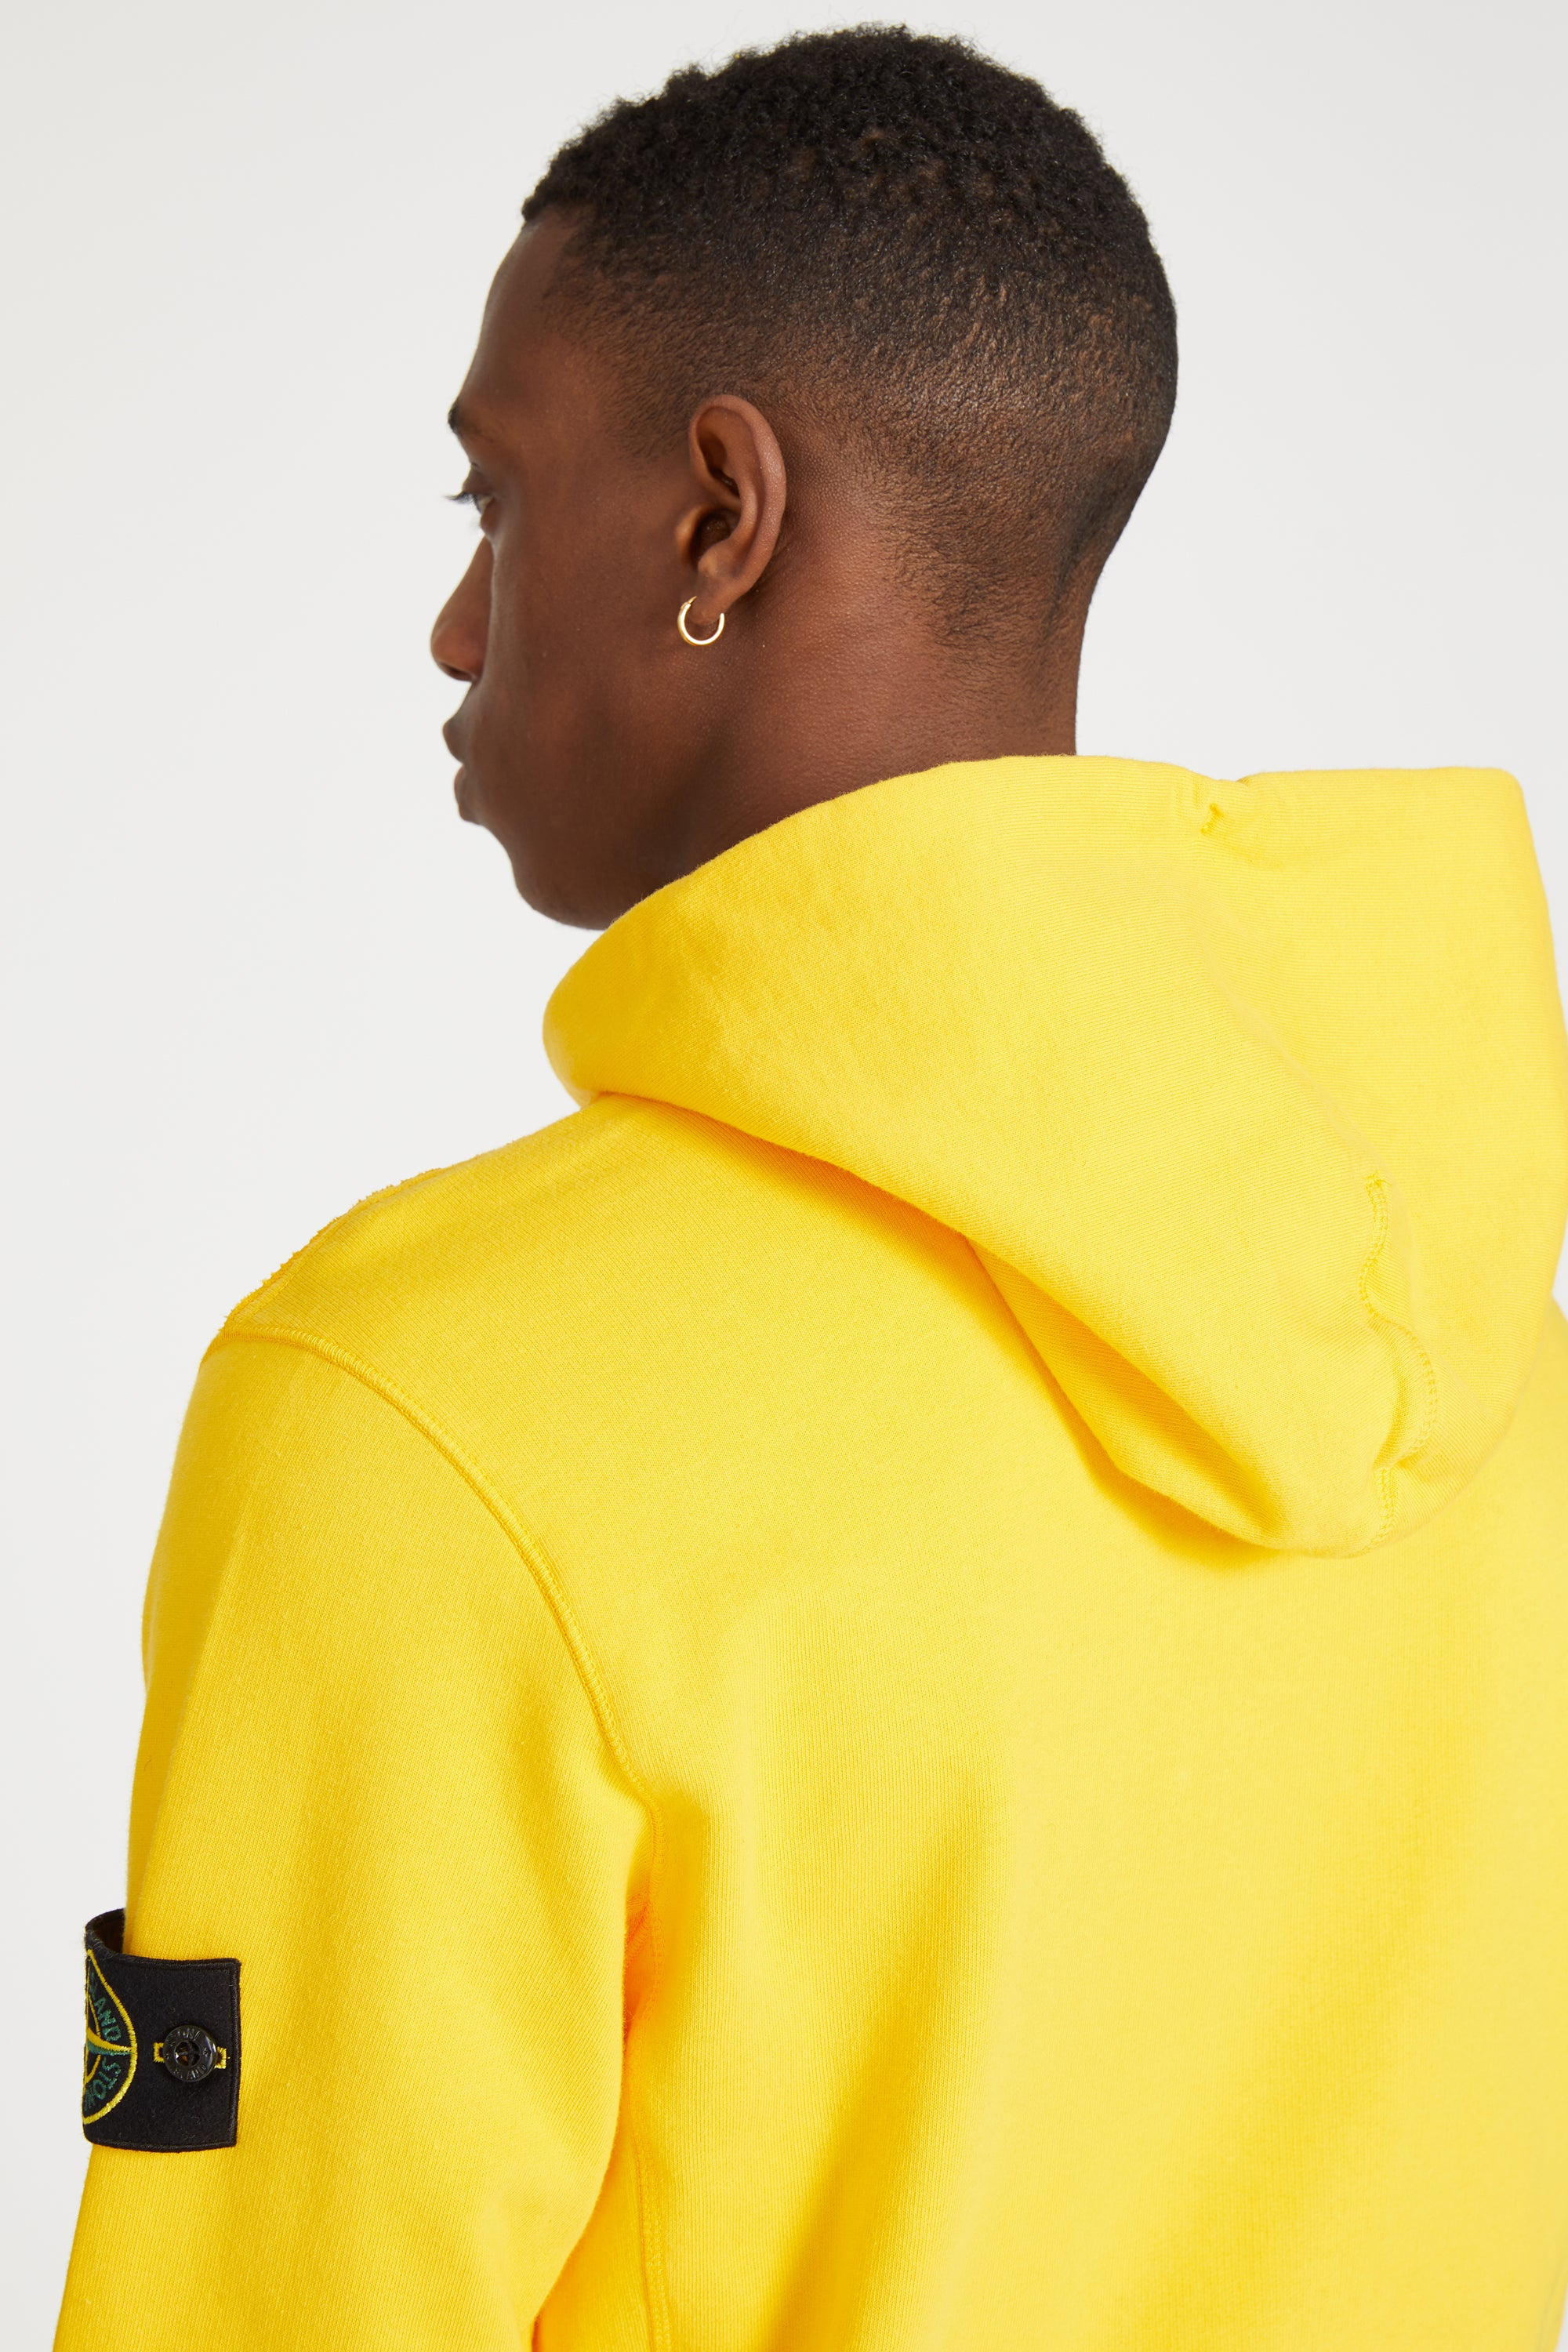 62840 COTTON FLEECE PULLOVER POCKET HOODY - YELLOW